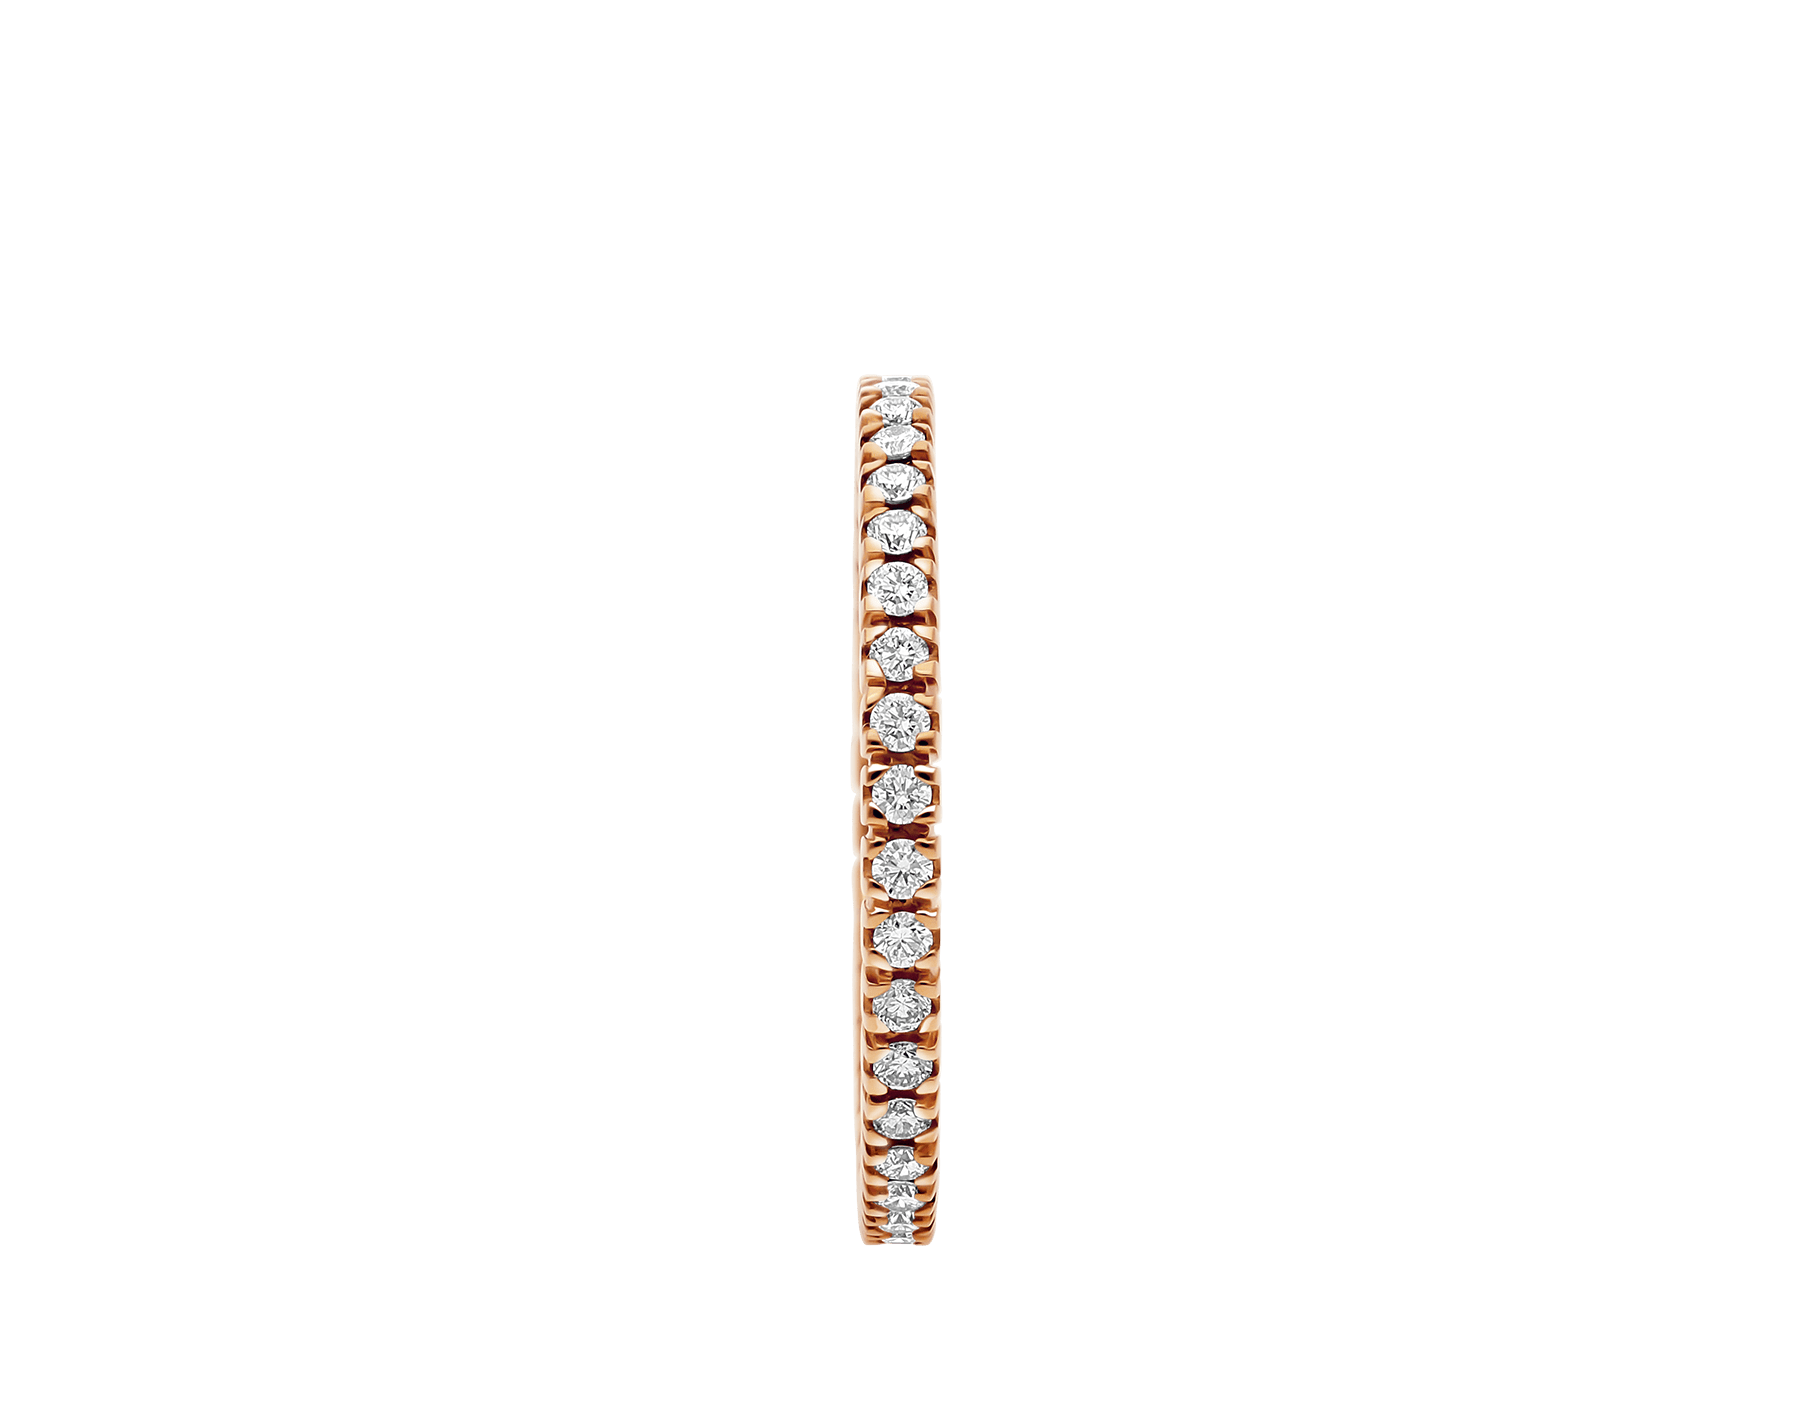 Eternity Band in thin size in 18 kt rose gold with round brilliant cut diamonds AN856428 image 2